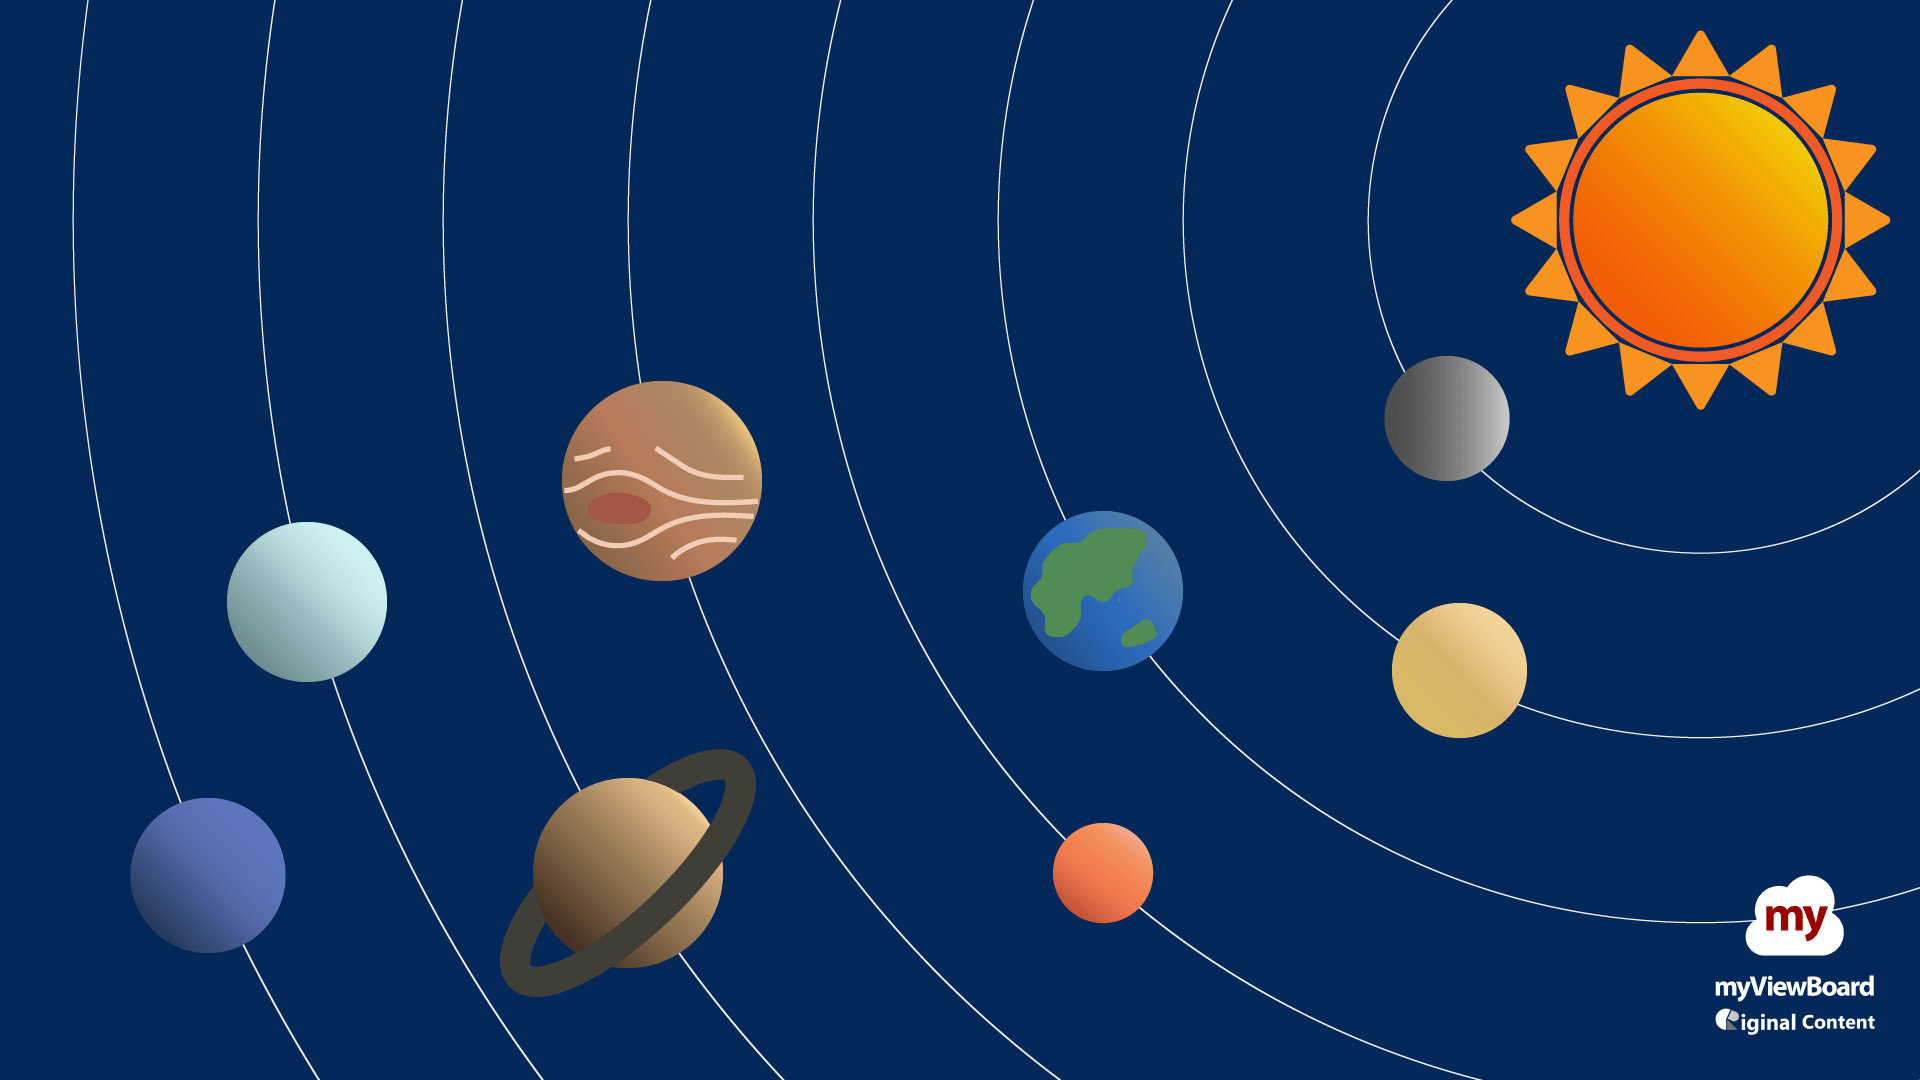 OCBnew thumbnail solar system(logo) Full HD.png